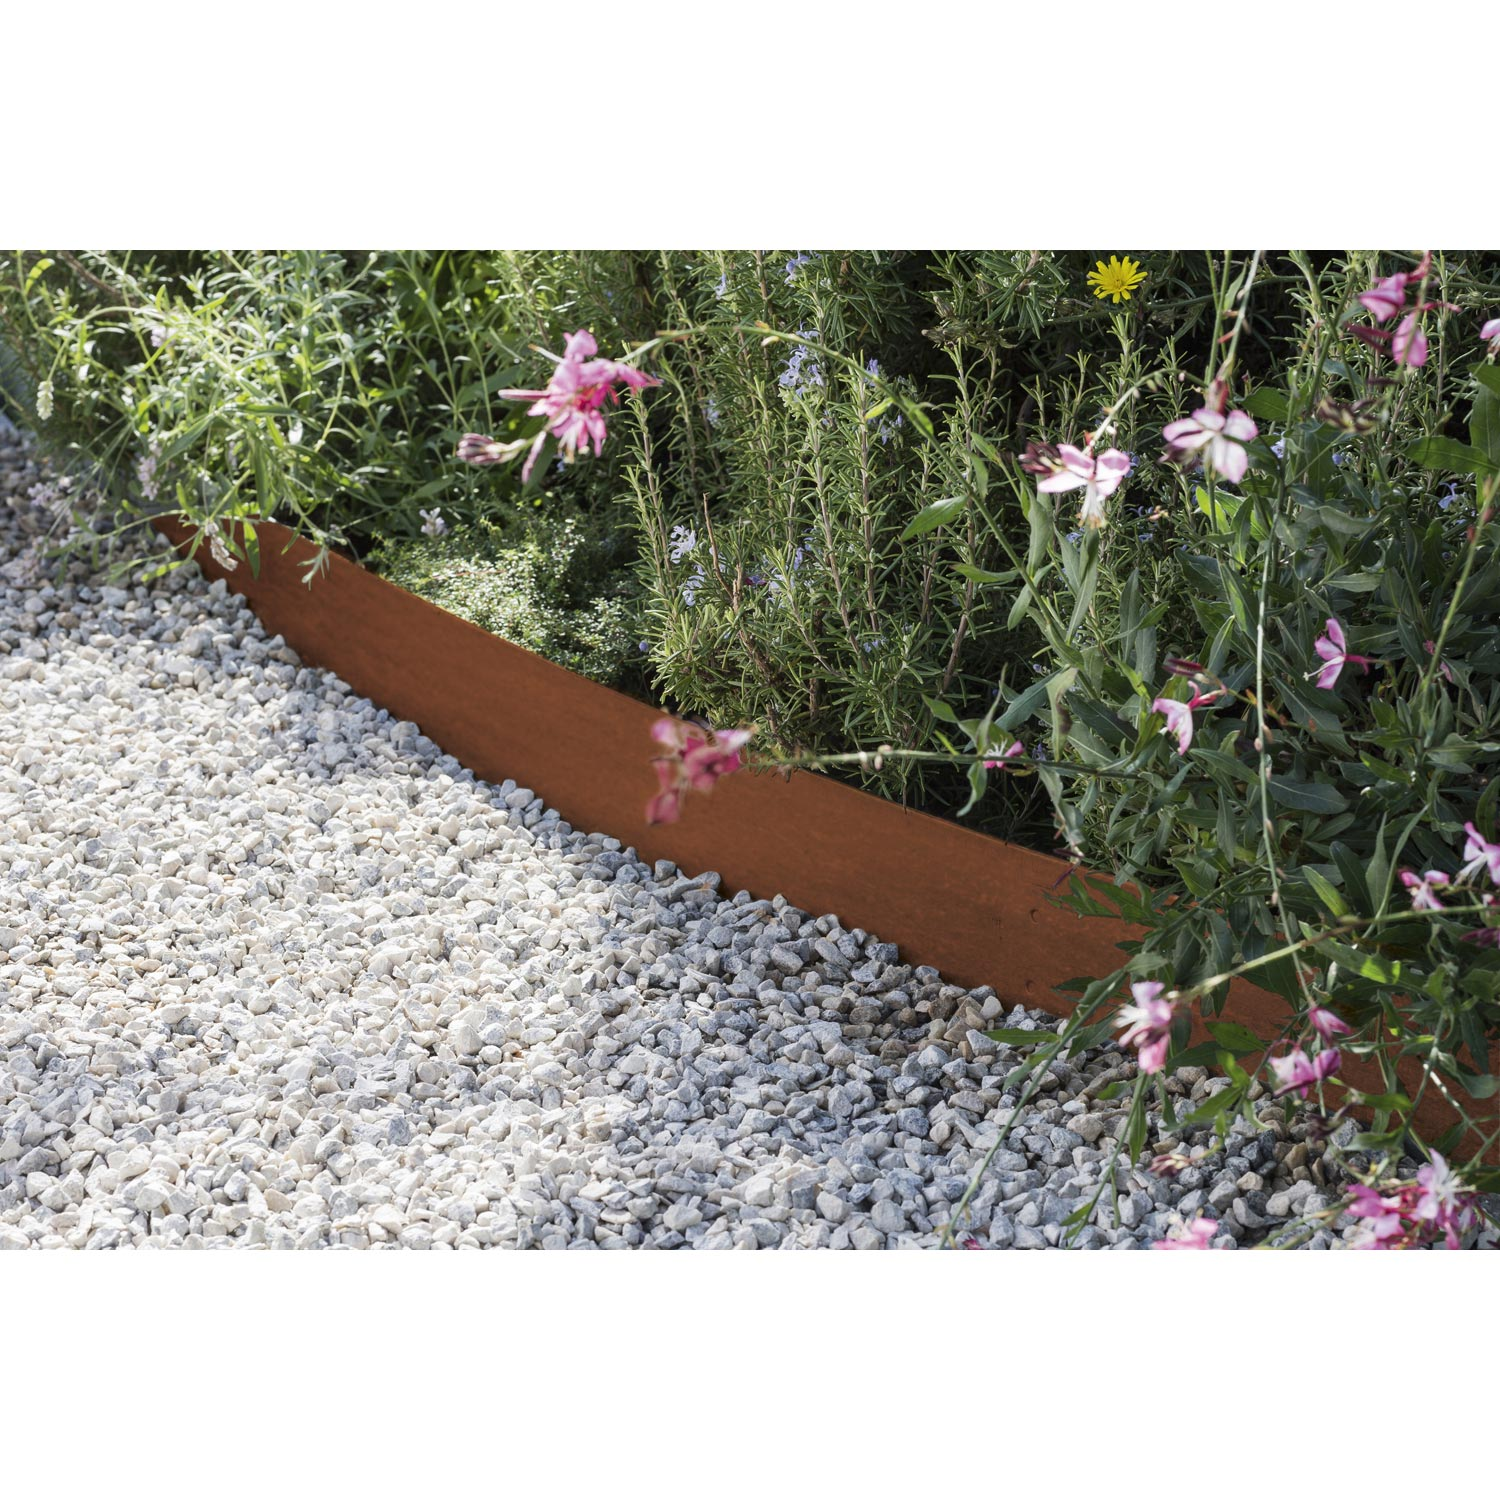 Bordure planter aspect rouille acier galvanis gris h - Bordure metallique jardin ...